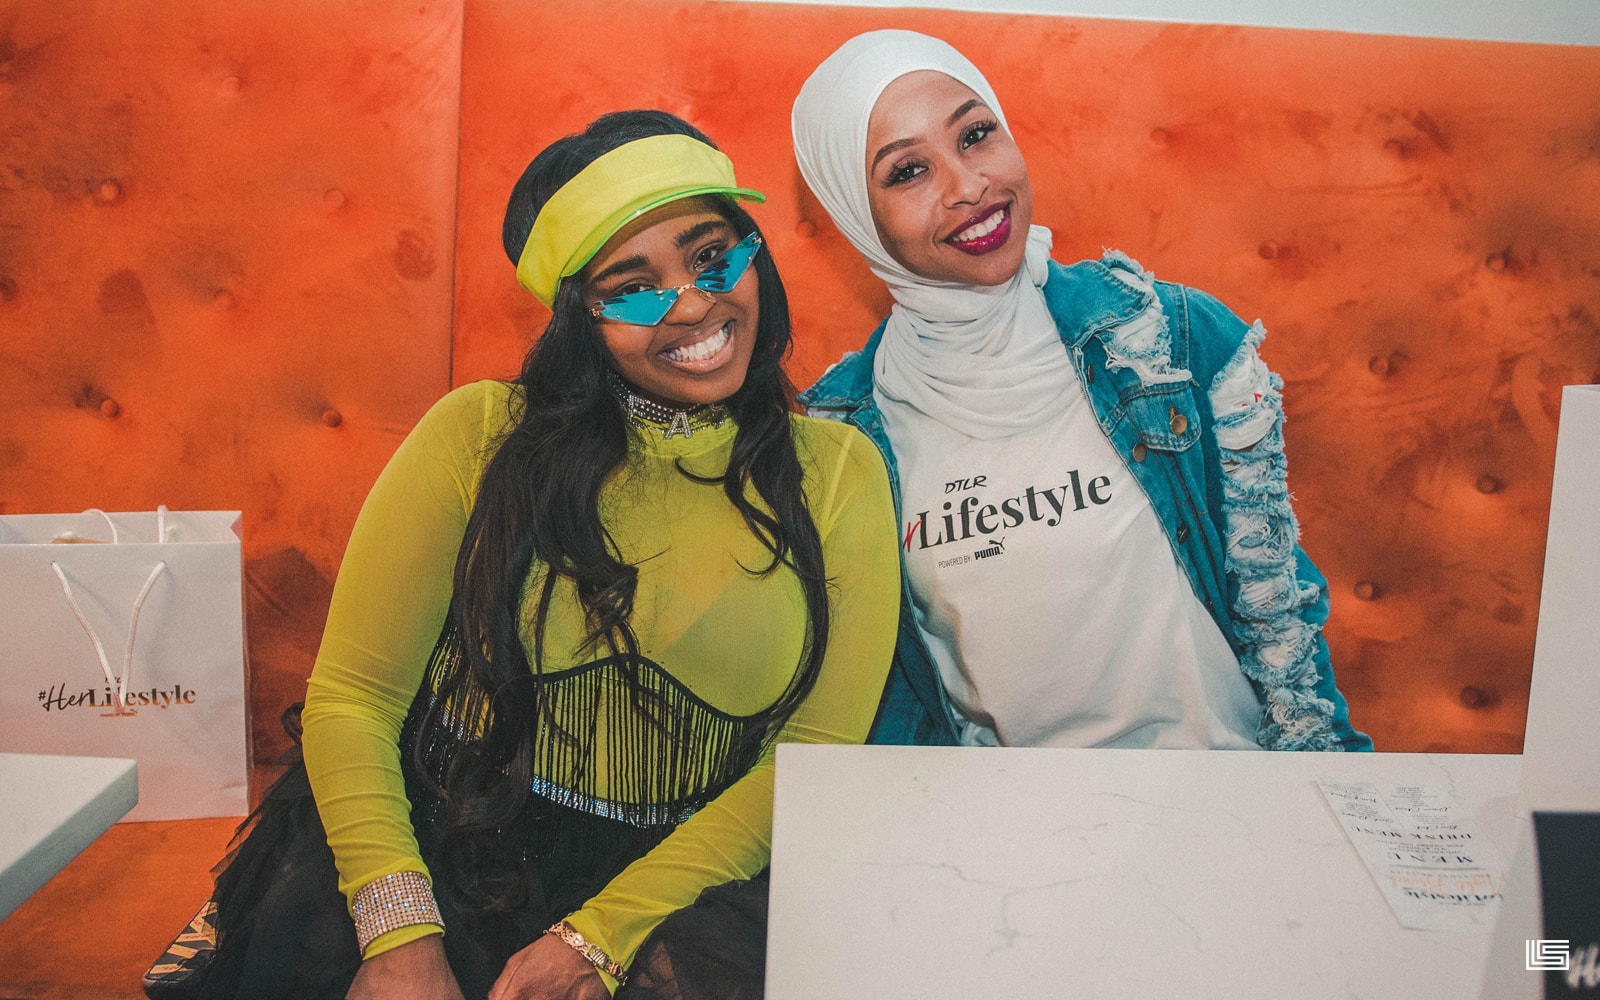 DTLR #HERLIFESTYLE EVENT POWERED BY PUMA LAUNCHES IN PHILLY